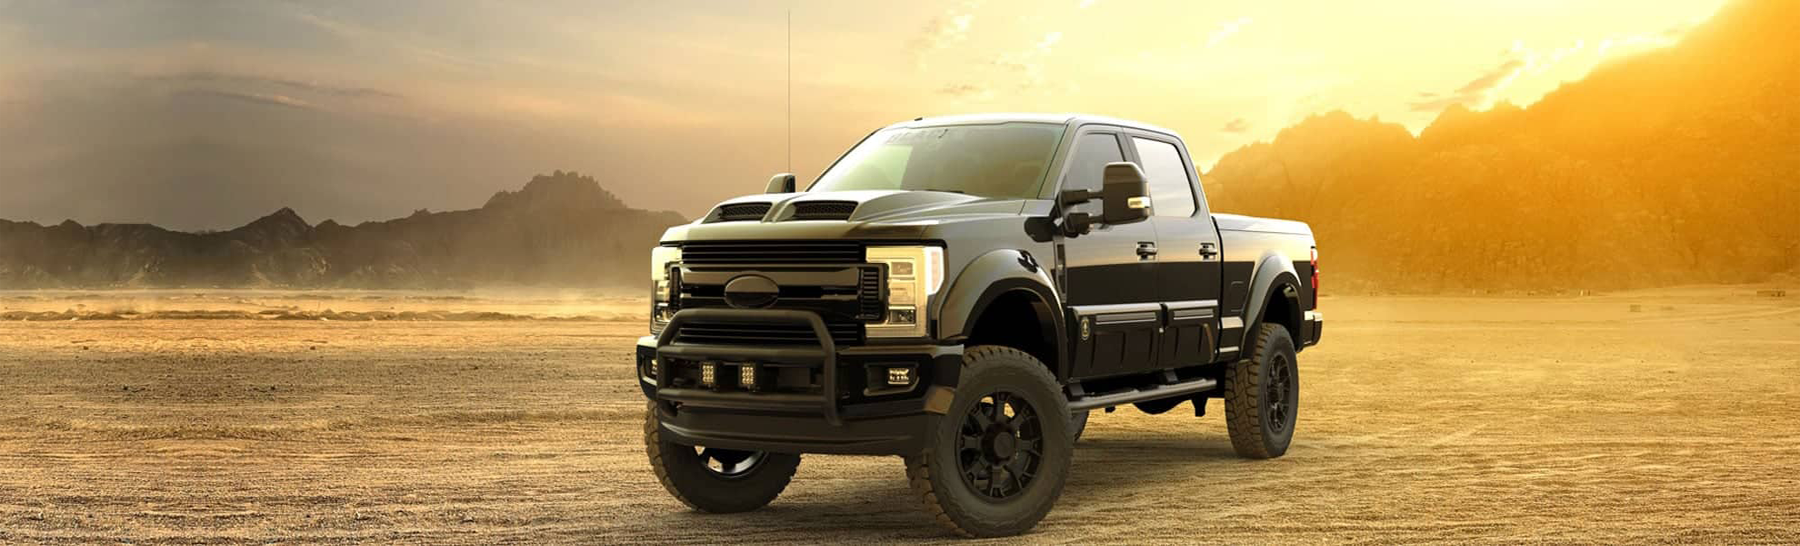 Ford-Tuscany-Black-Ops-Truck